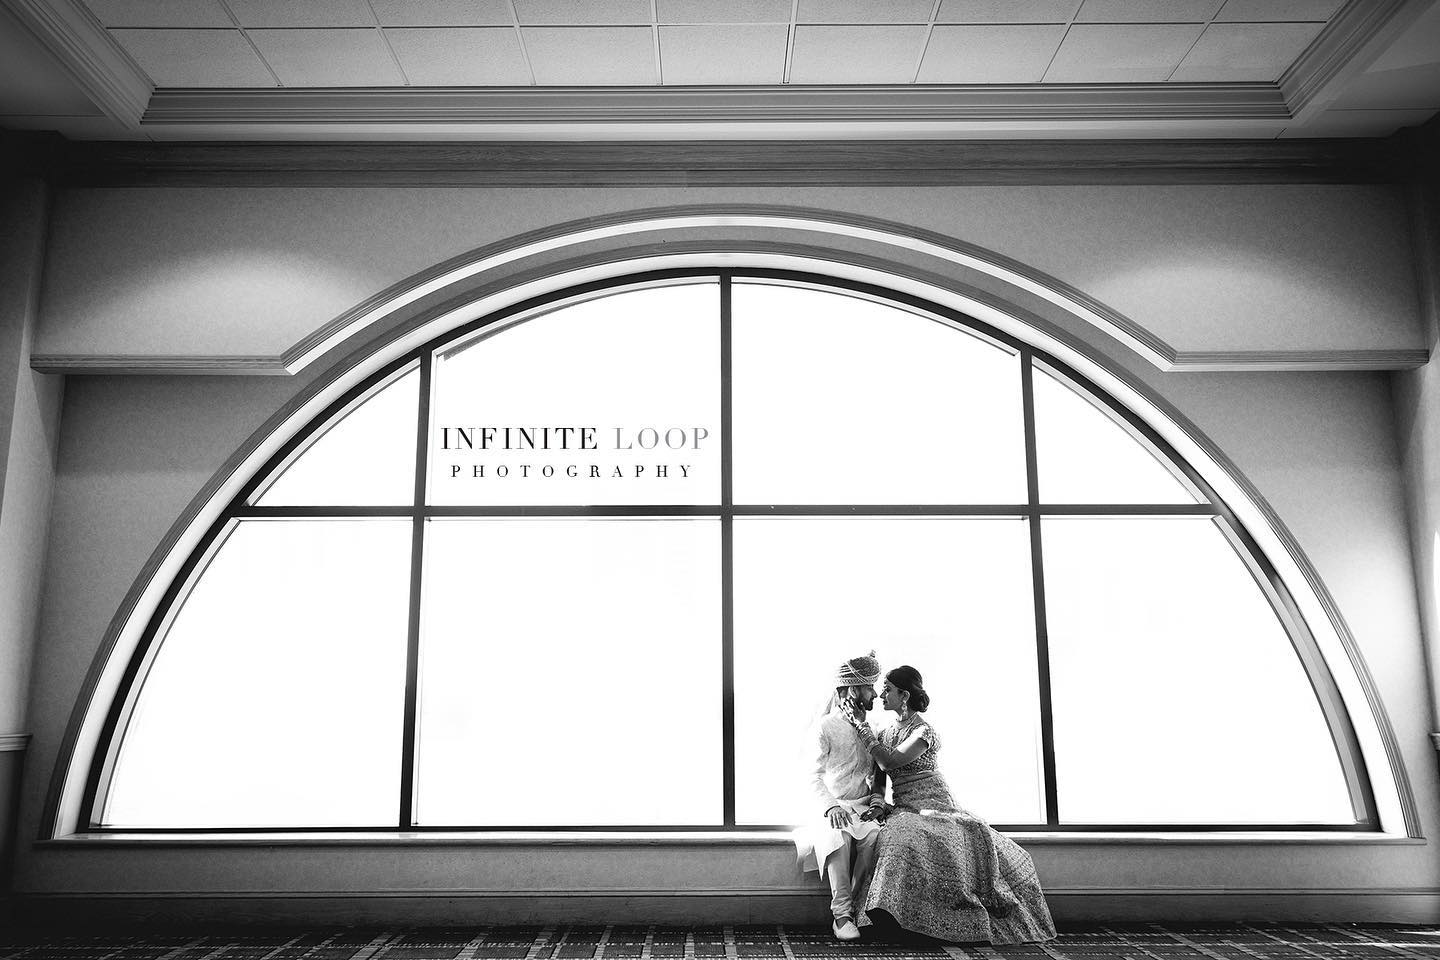 Black and white photo of a bride and groom dressed in traditional clothes pose in front of a semi-circle shaped window